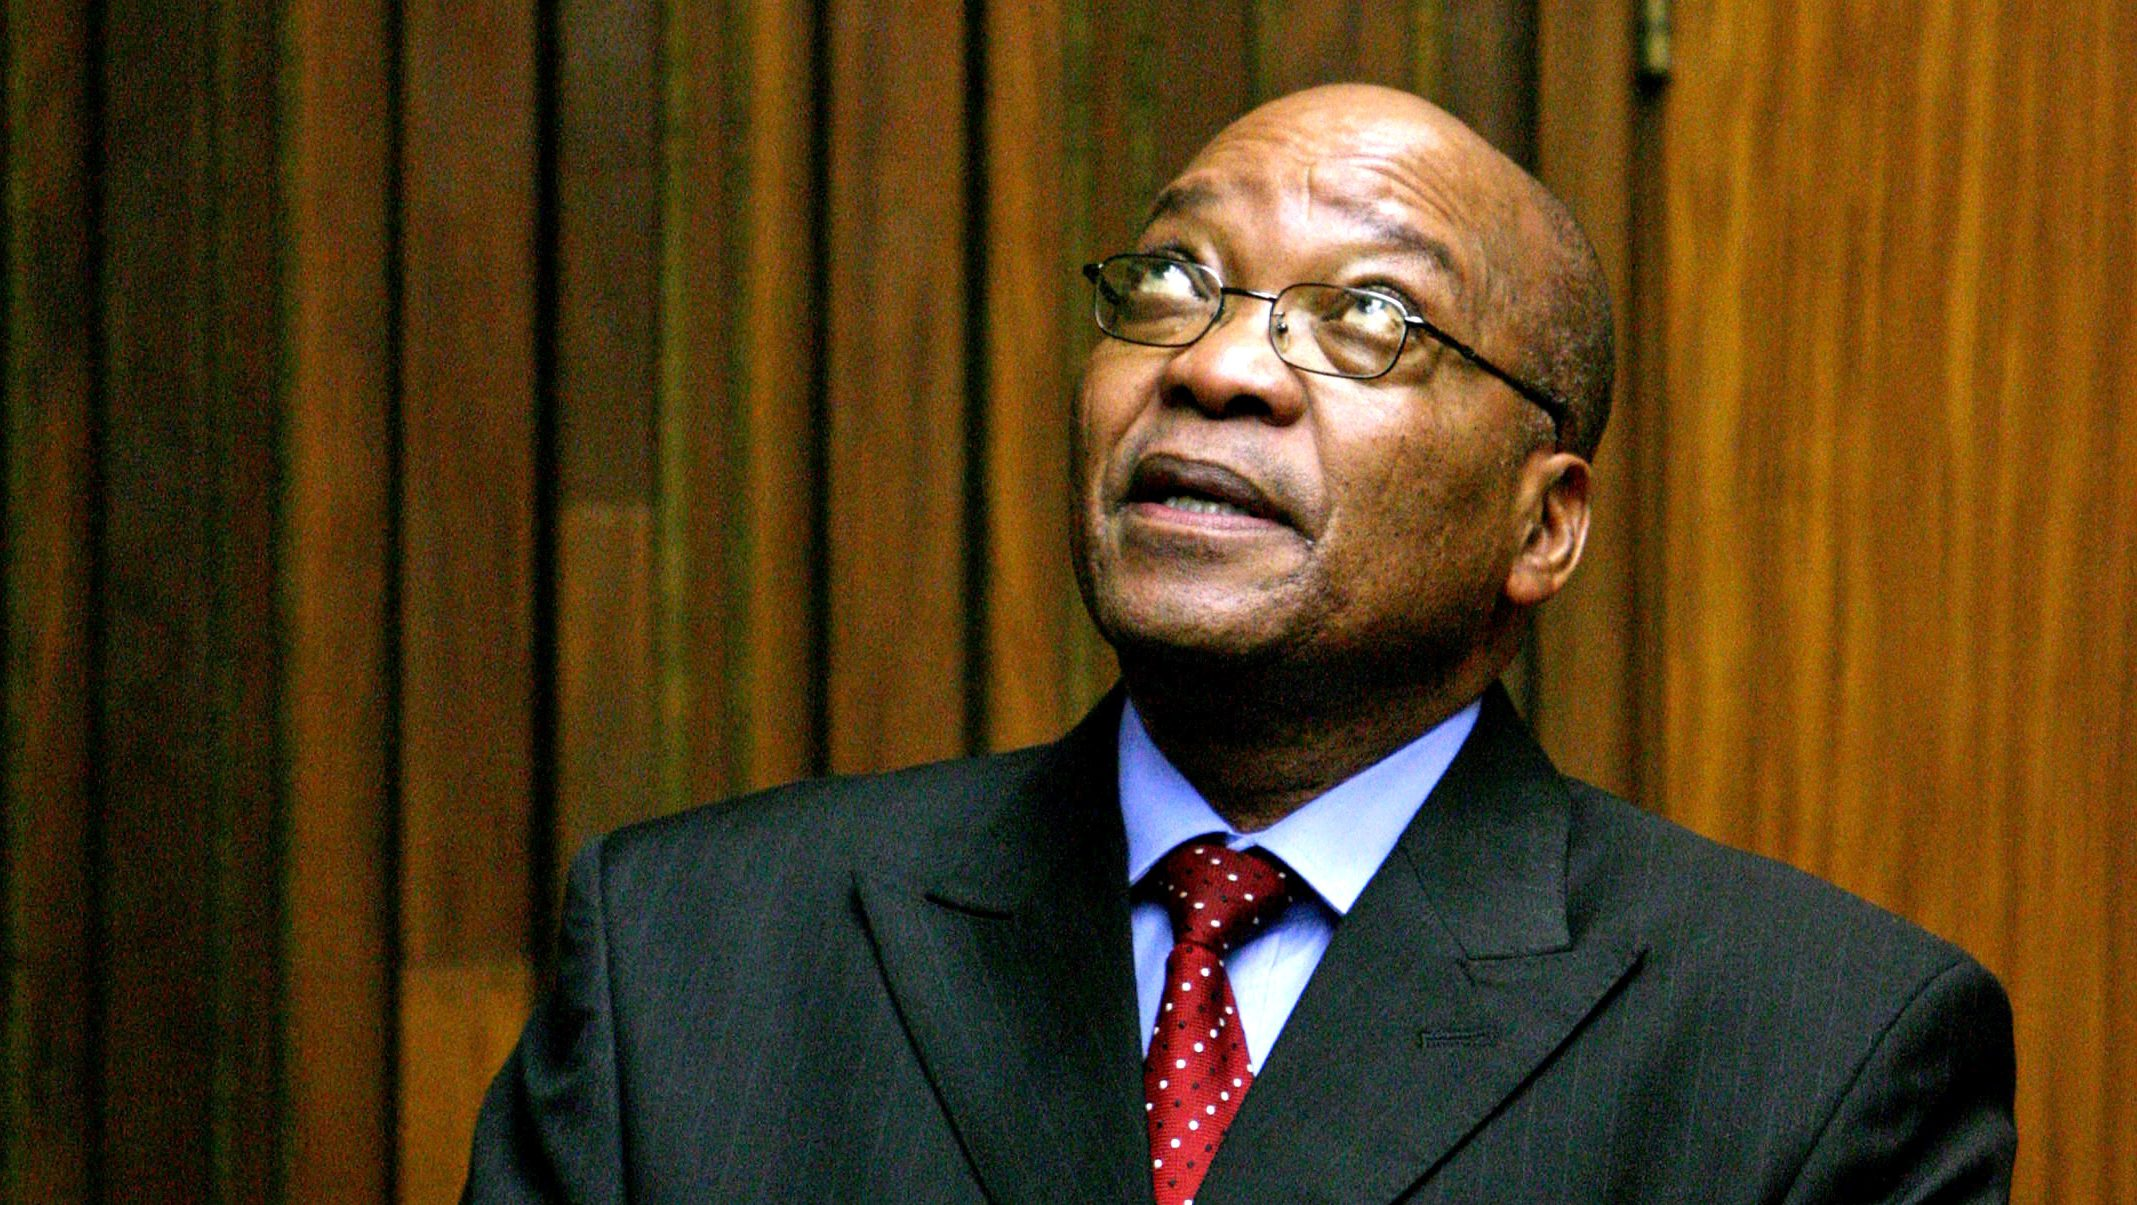 Former South African deputy-President Jacob Zuma stands in the dock during the judgement in his trial for rape in the Johannesburg High Court, May 8, 2006.